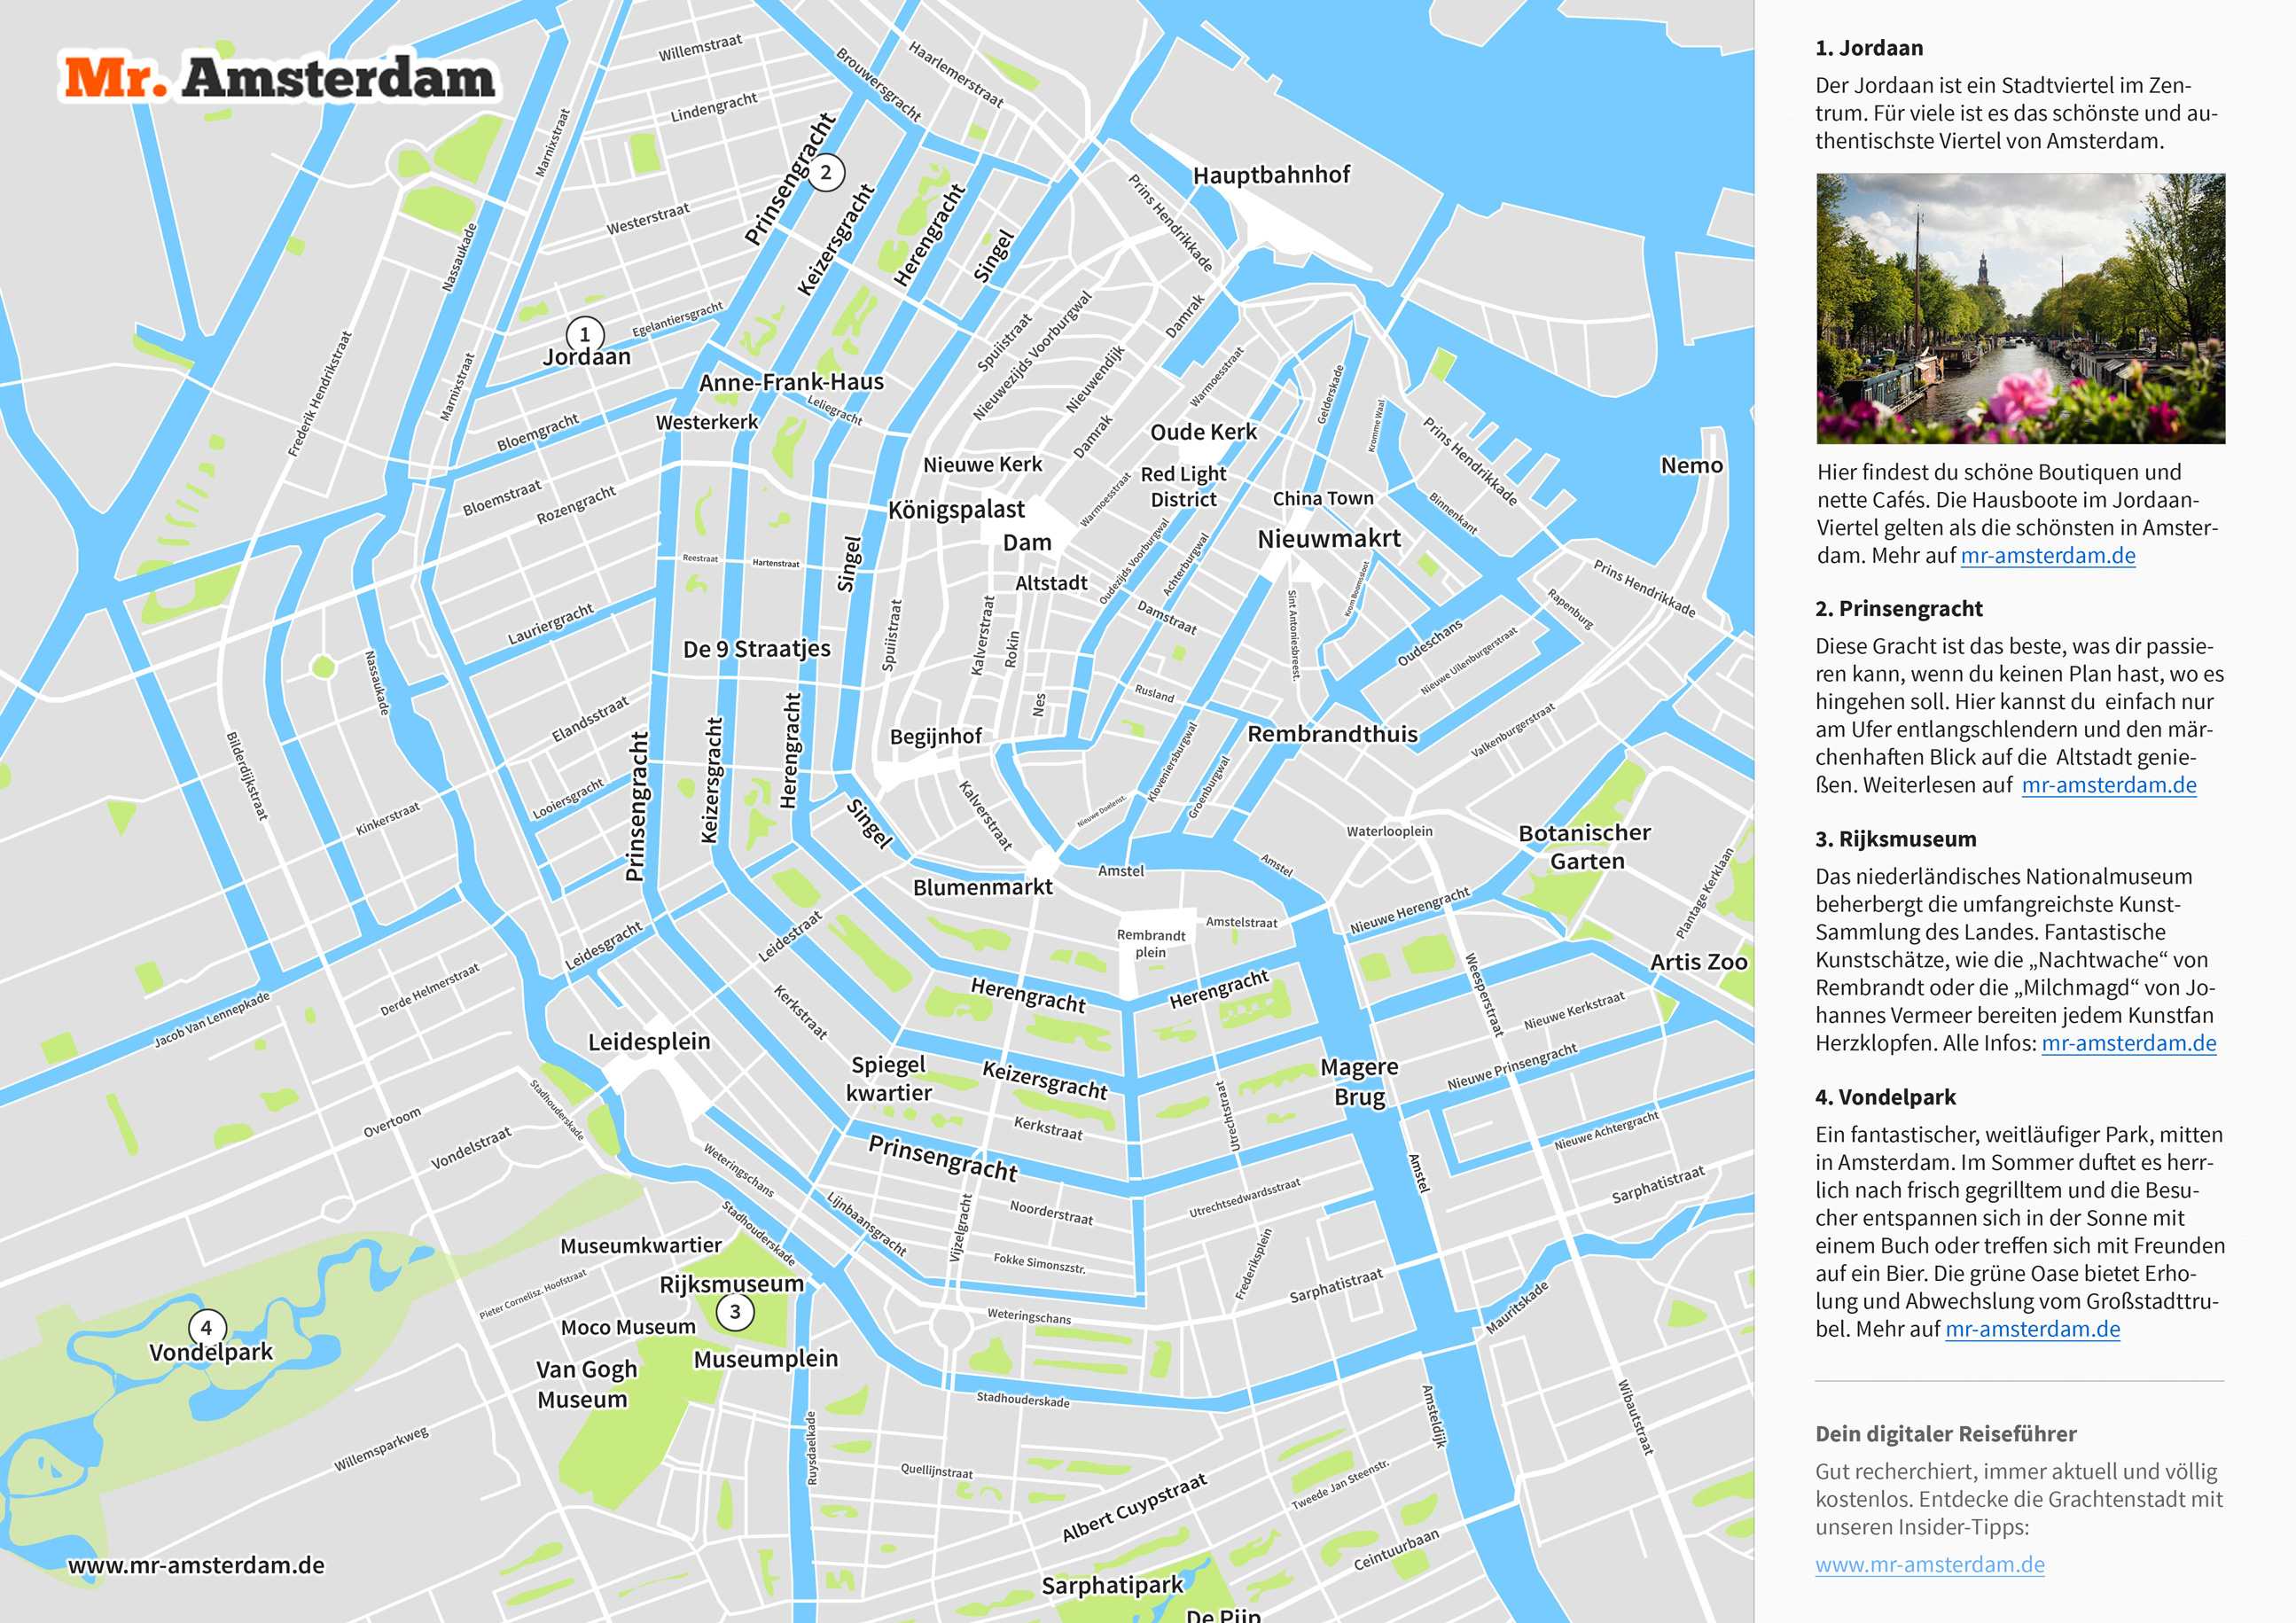 stadtplan von amsterdam kostenlos als pdf mr amsterdam. Black Bedroom Furniture Sets. Home Design Ideas